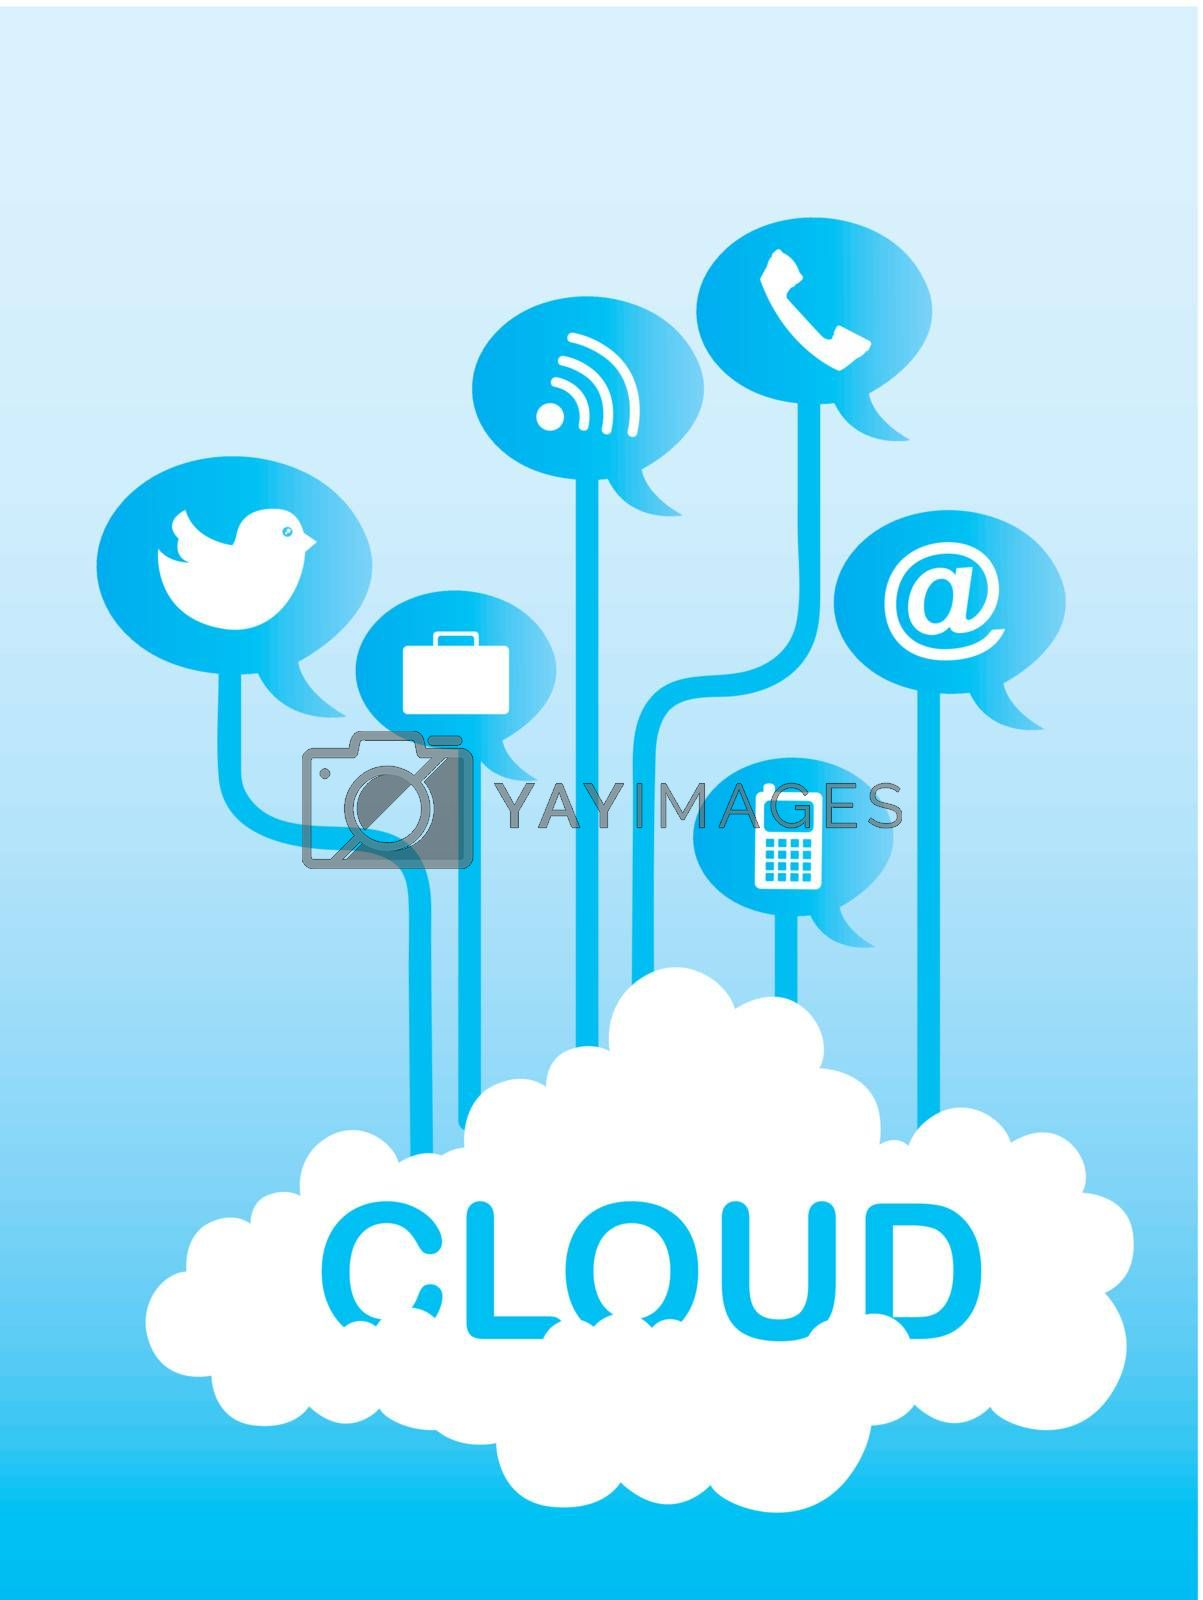 cloud communication with icons over sky background. vector